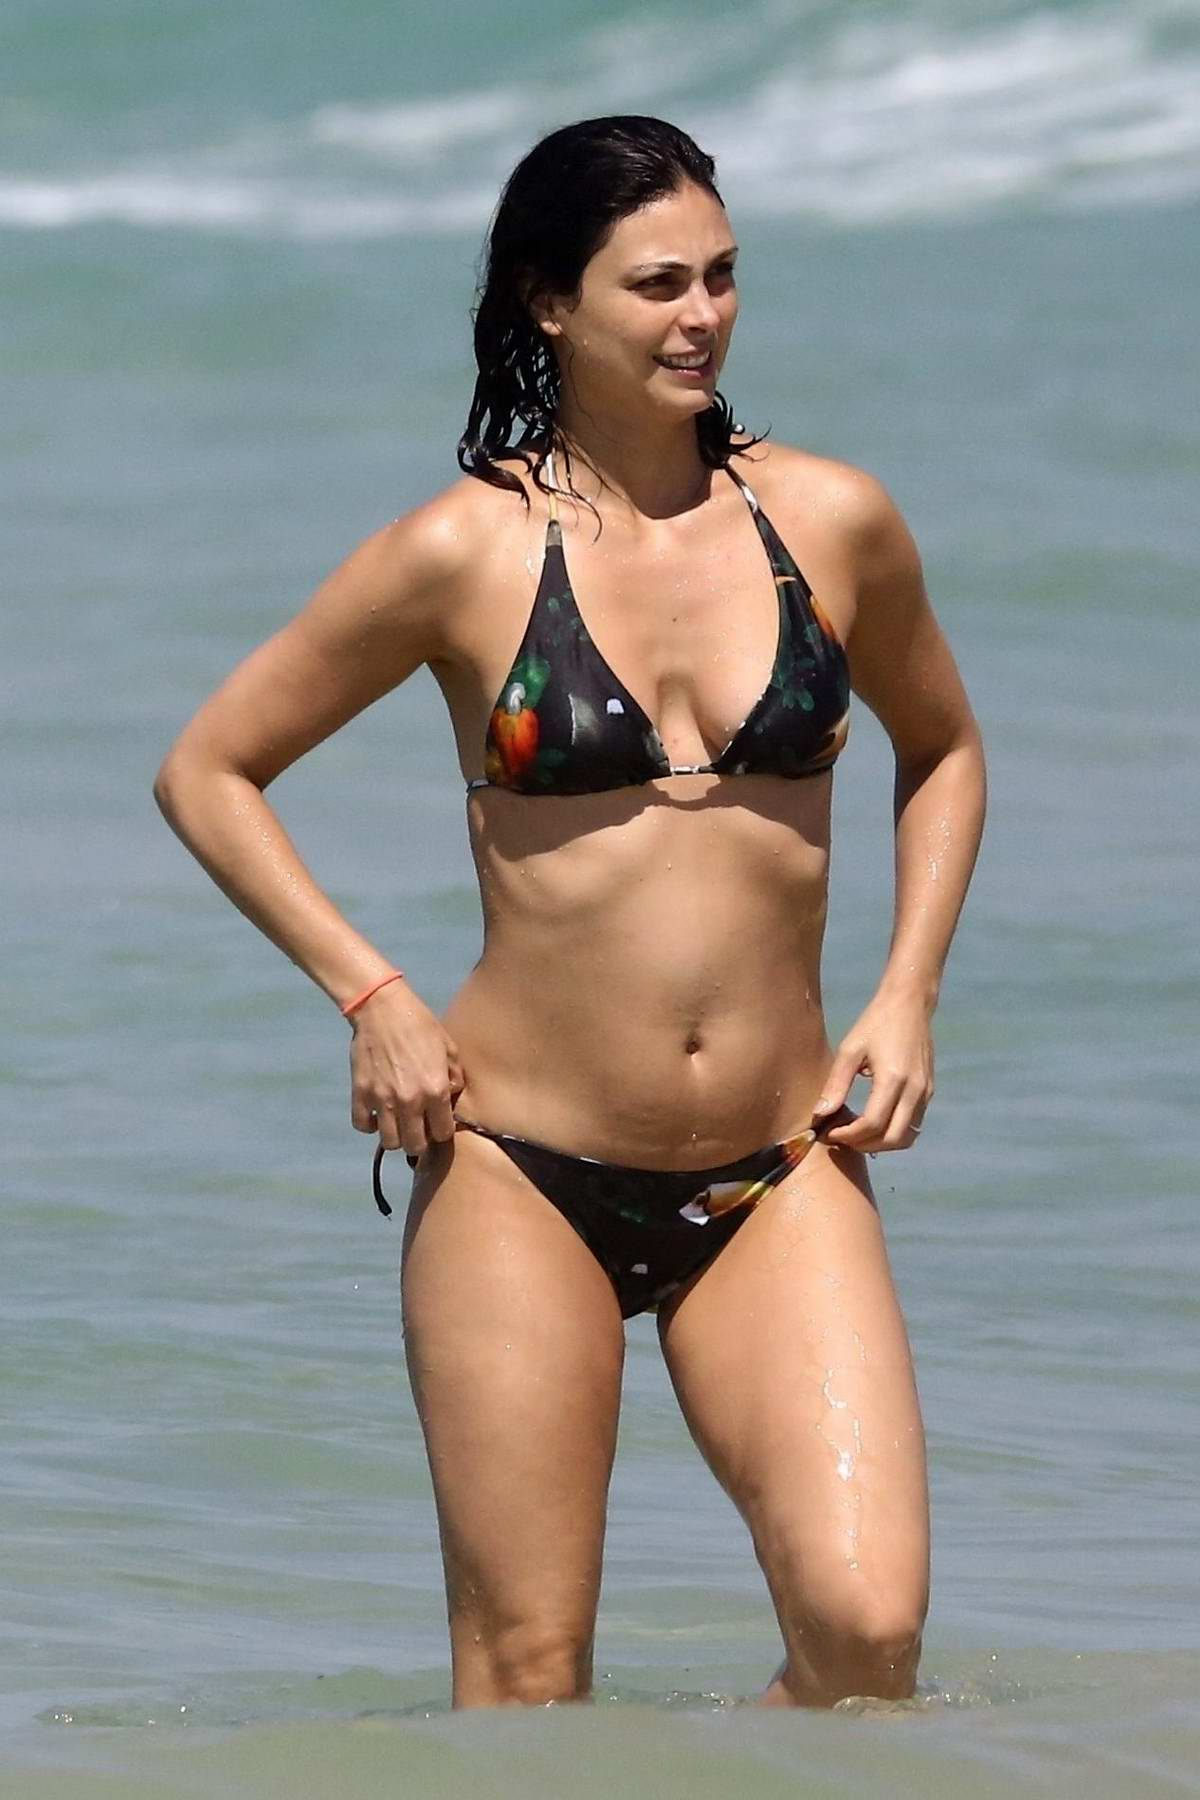 Morena Baccarin spotted in a bikini while enjoying a beach day with her family in Rio de Janeiro, Brazil